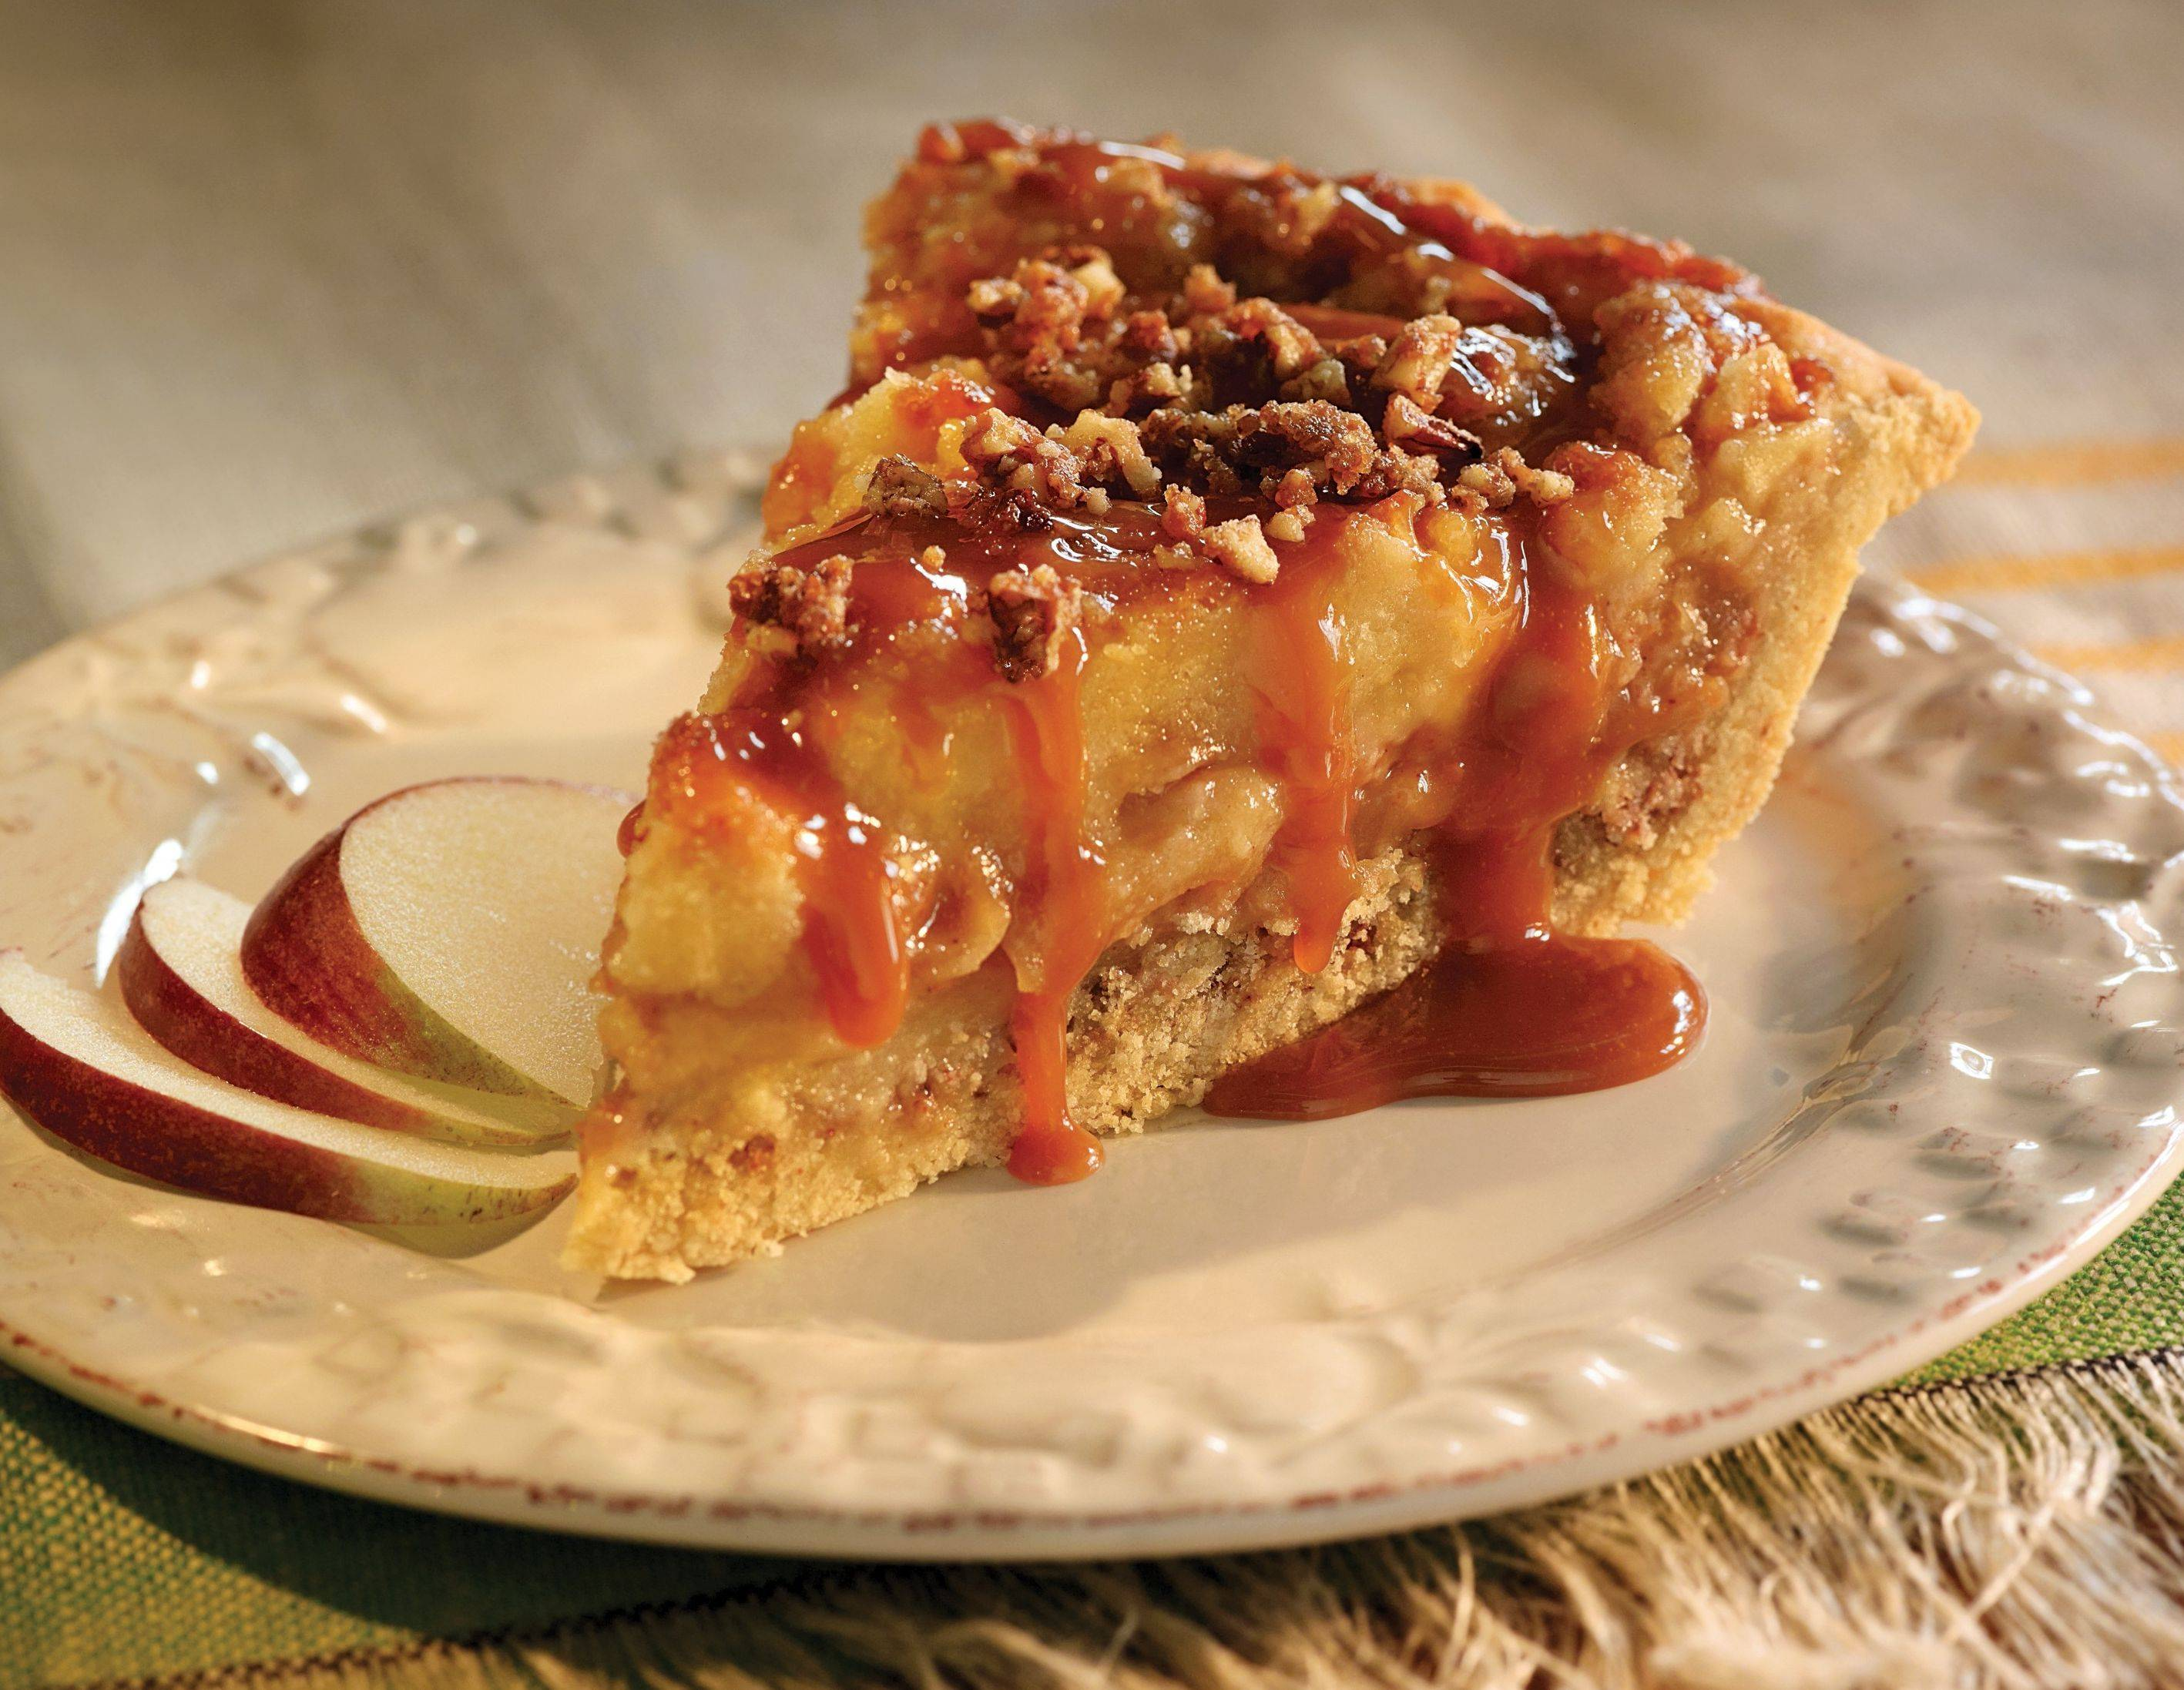 Celebrate National Pie Day on Jan. 23 with a decadent slice of Laura's Sticky Toffee Pudding Apple Pie.